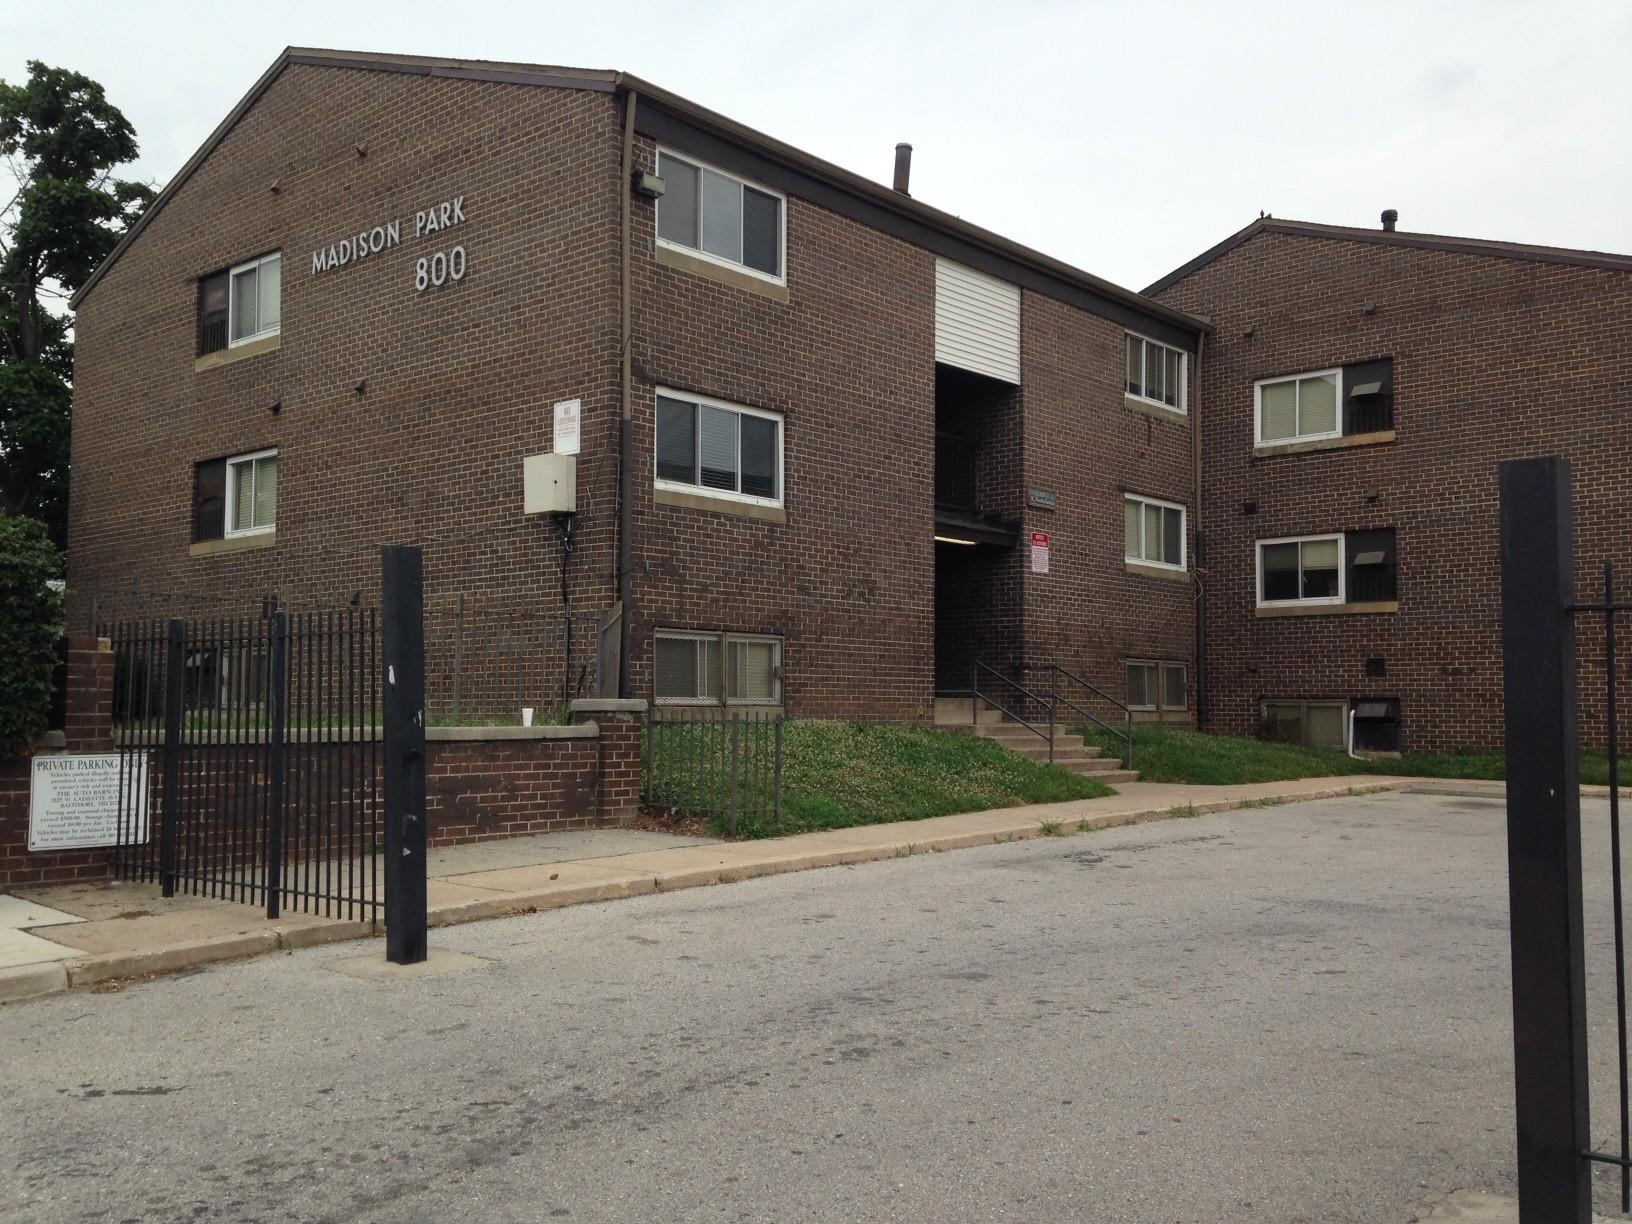 Madison Park North Apartments are slated to be torn down in the next year.